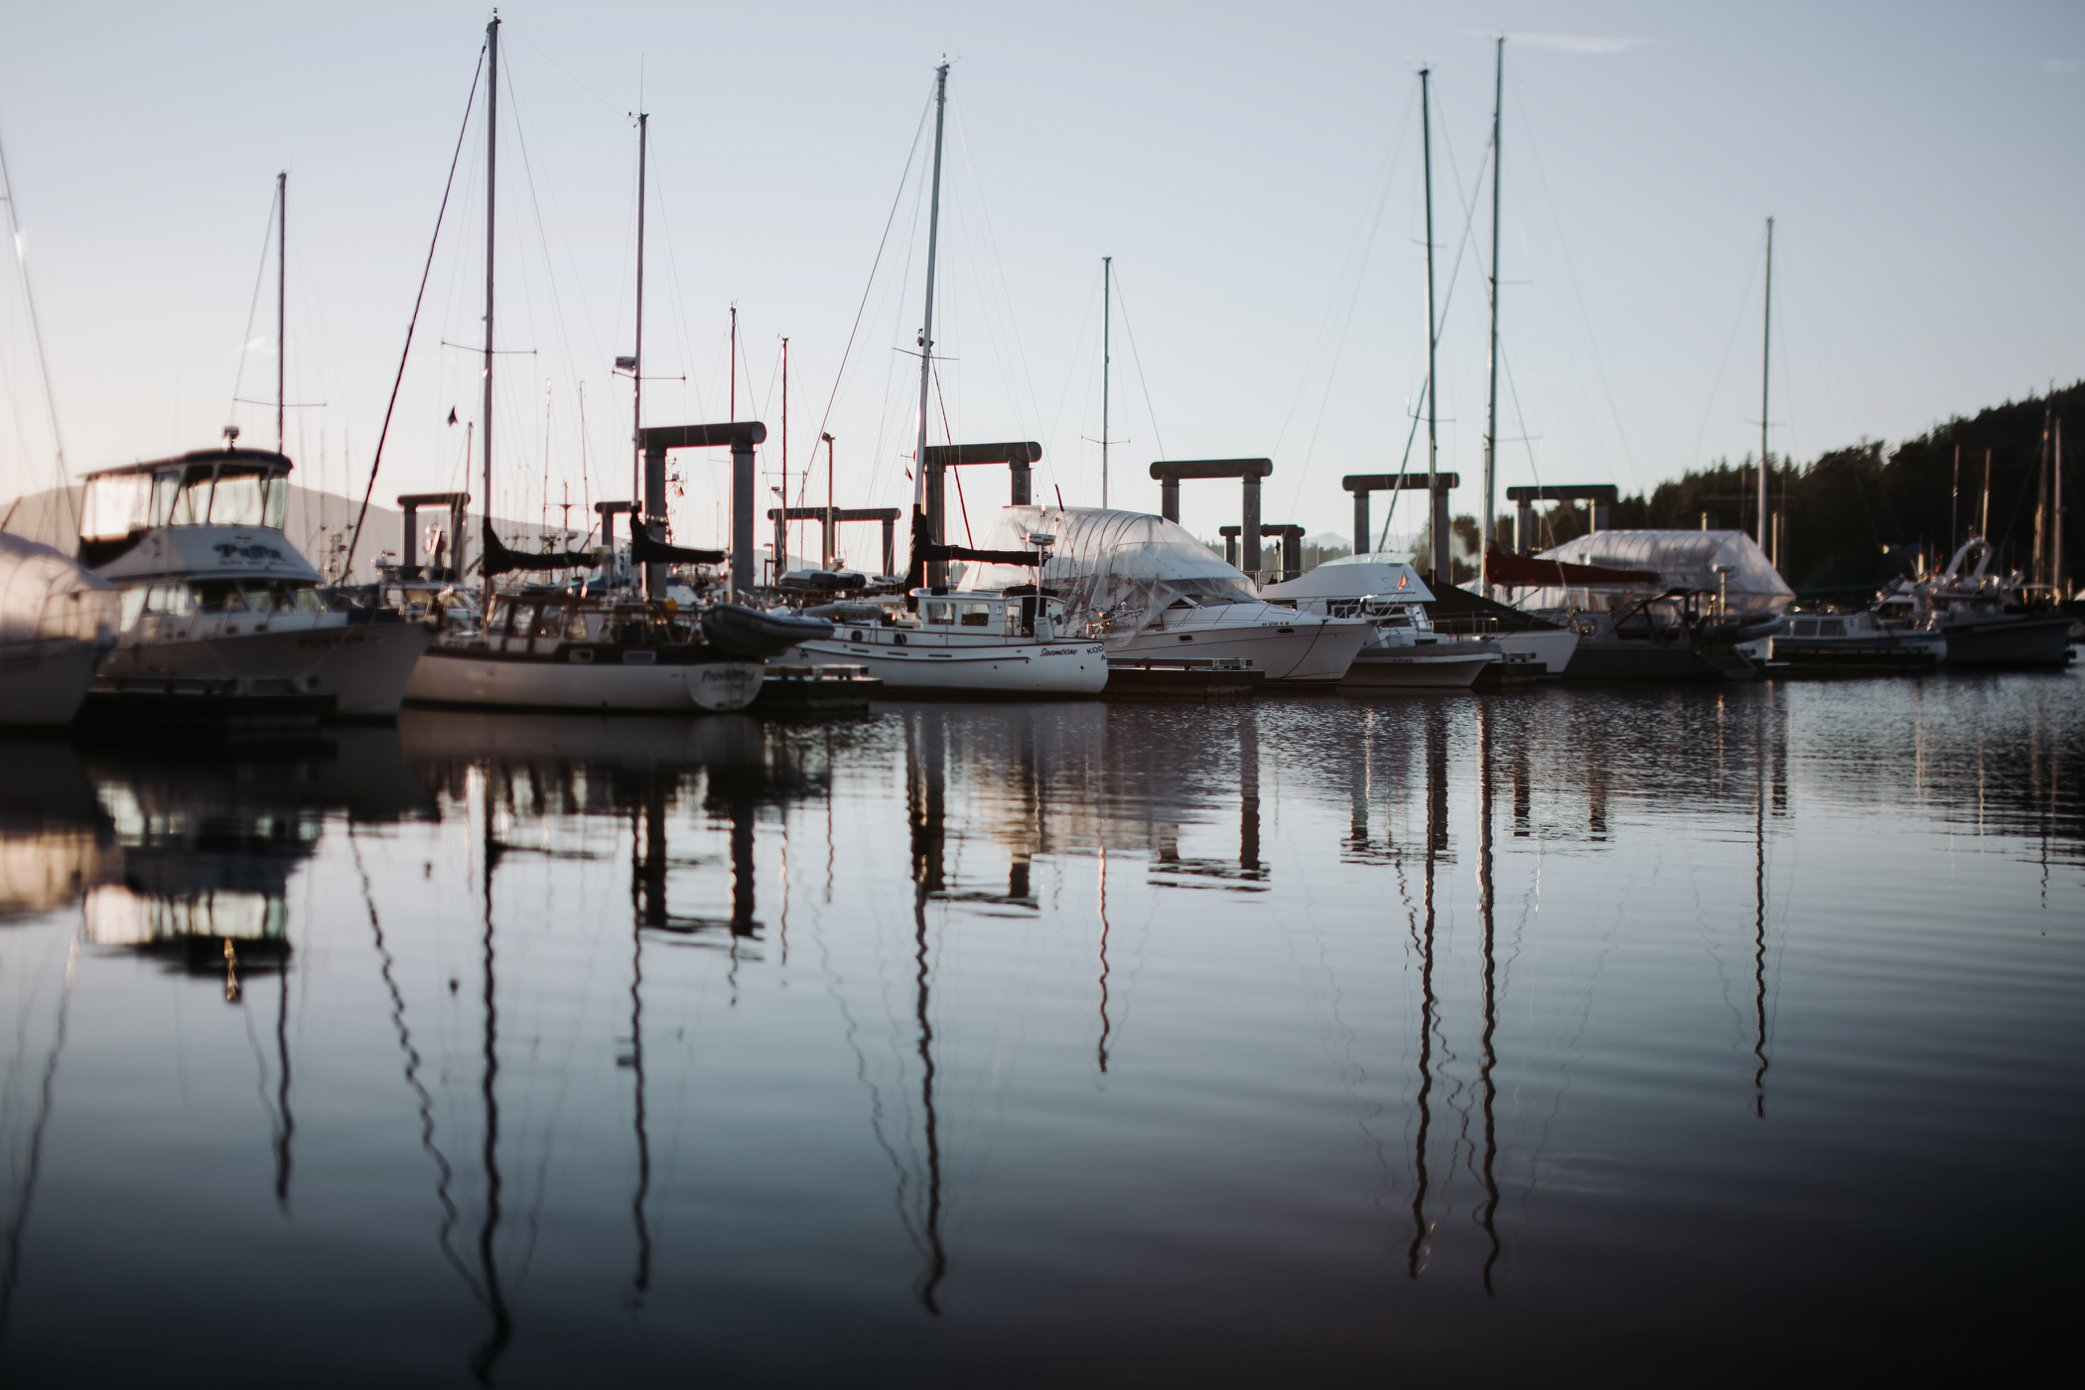 boats in winter at Auke Bay